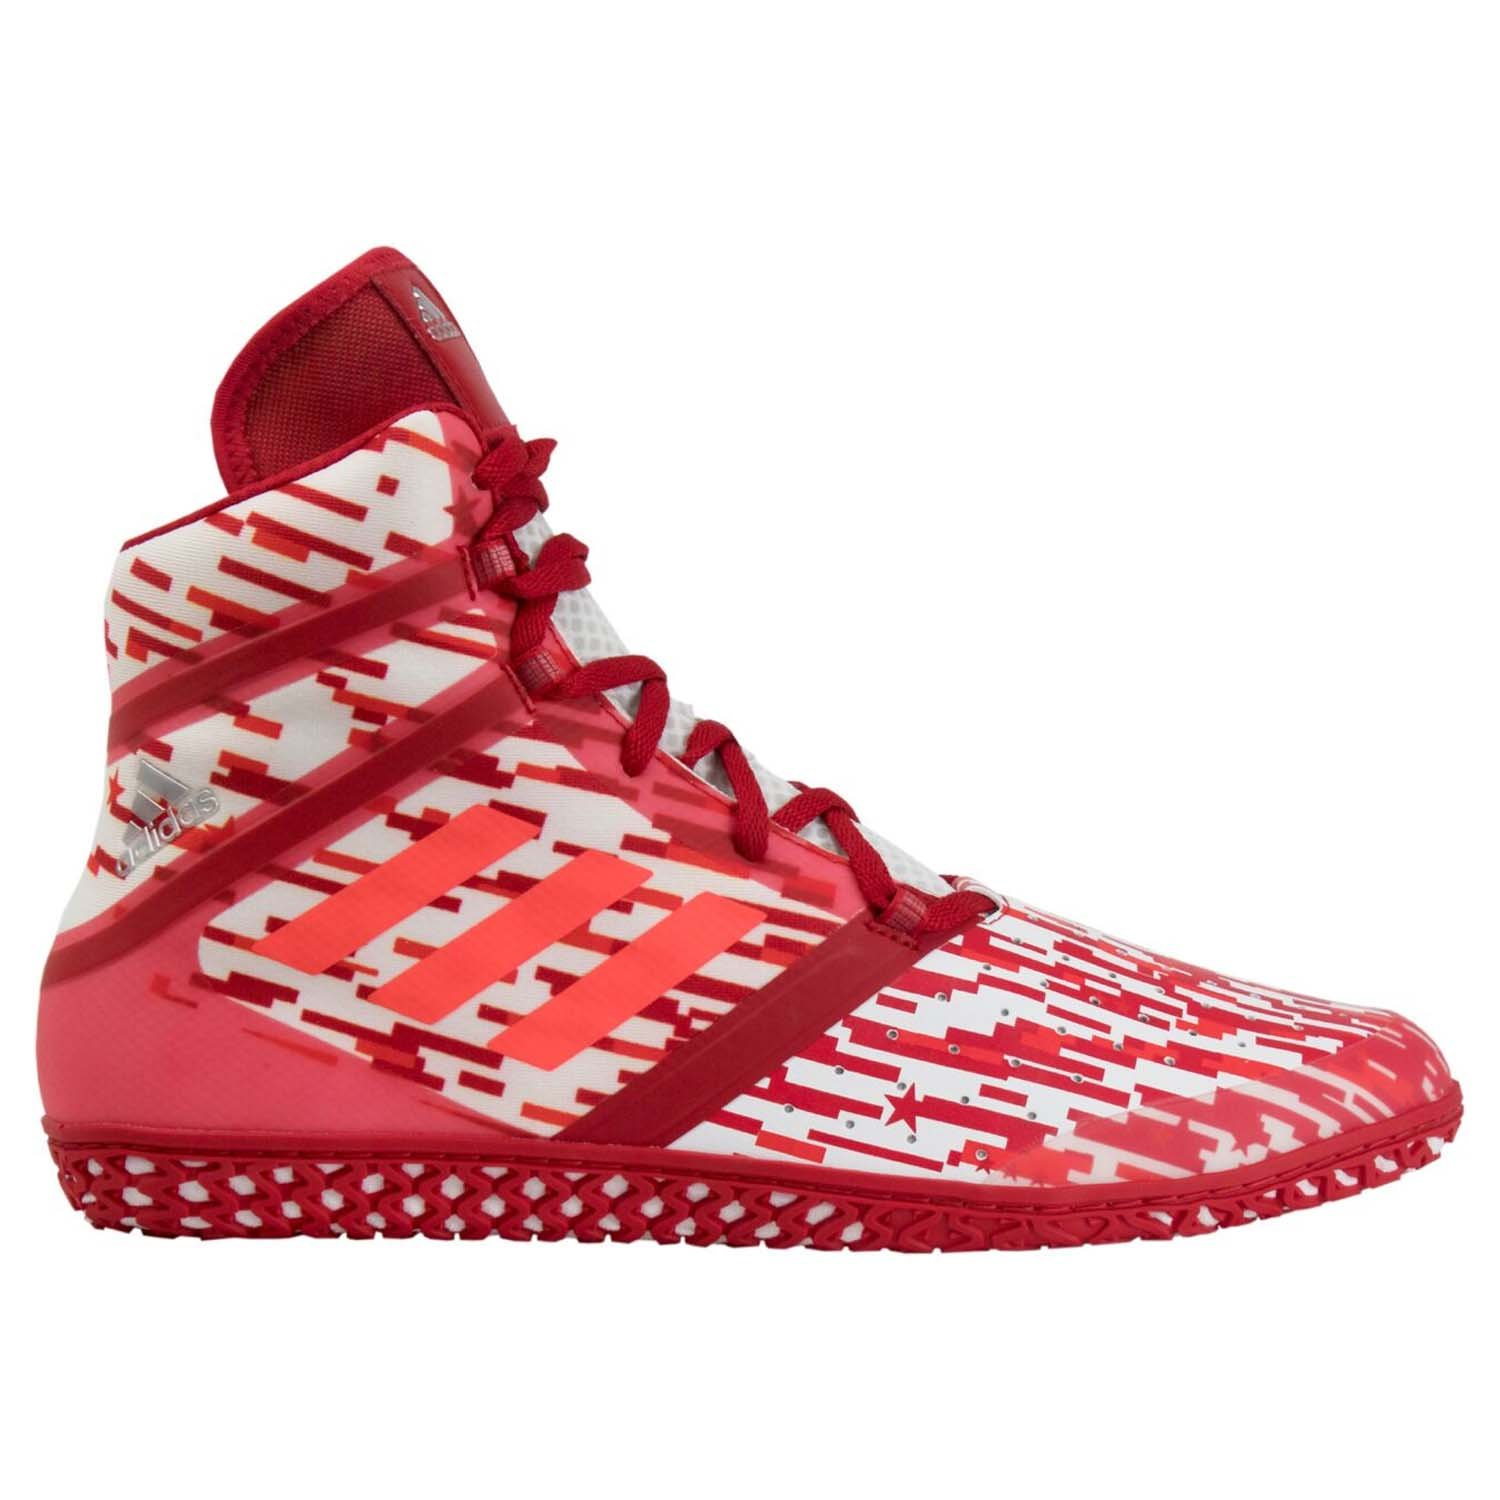 hot sale online d42f3 e7c20 Galleon - Adidas Impact Men s Wrestling Shoes, Red Digital Print, Size 8